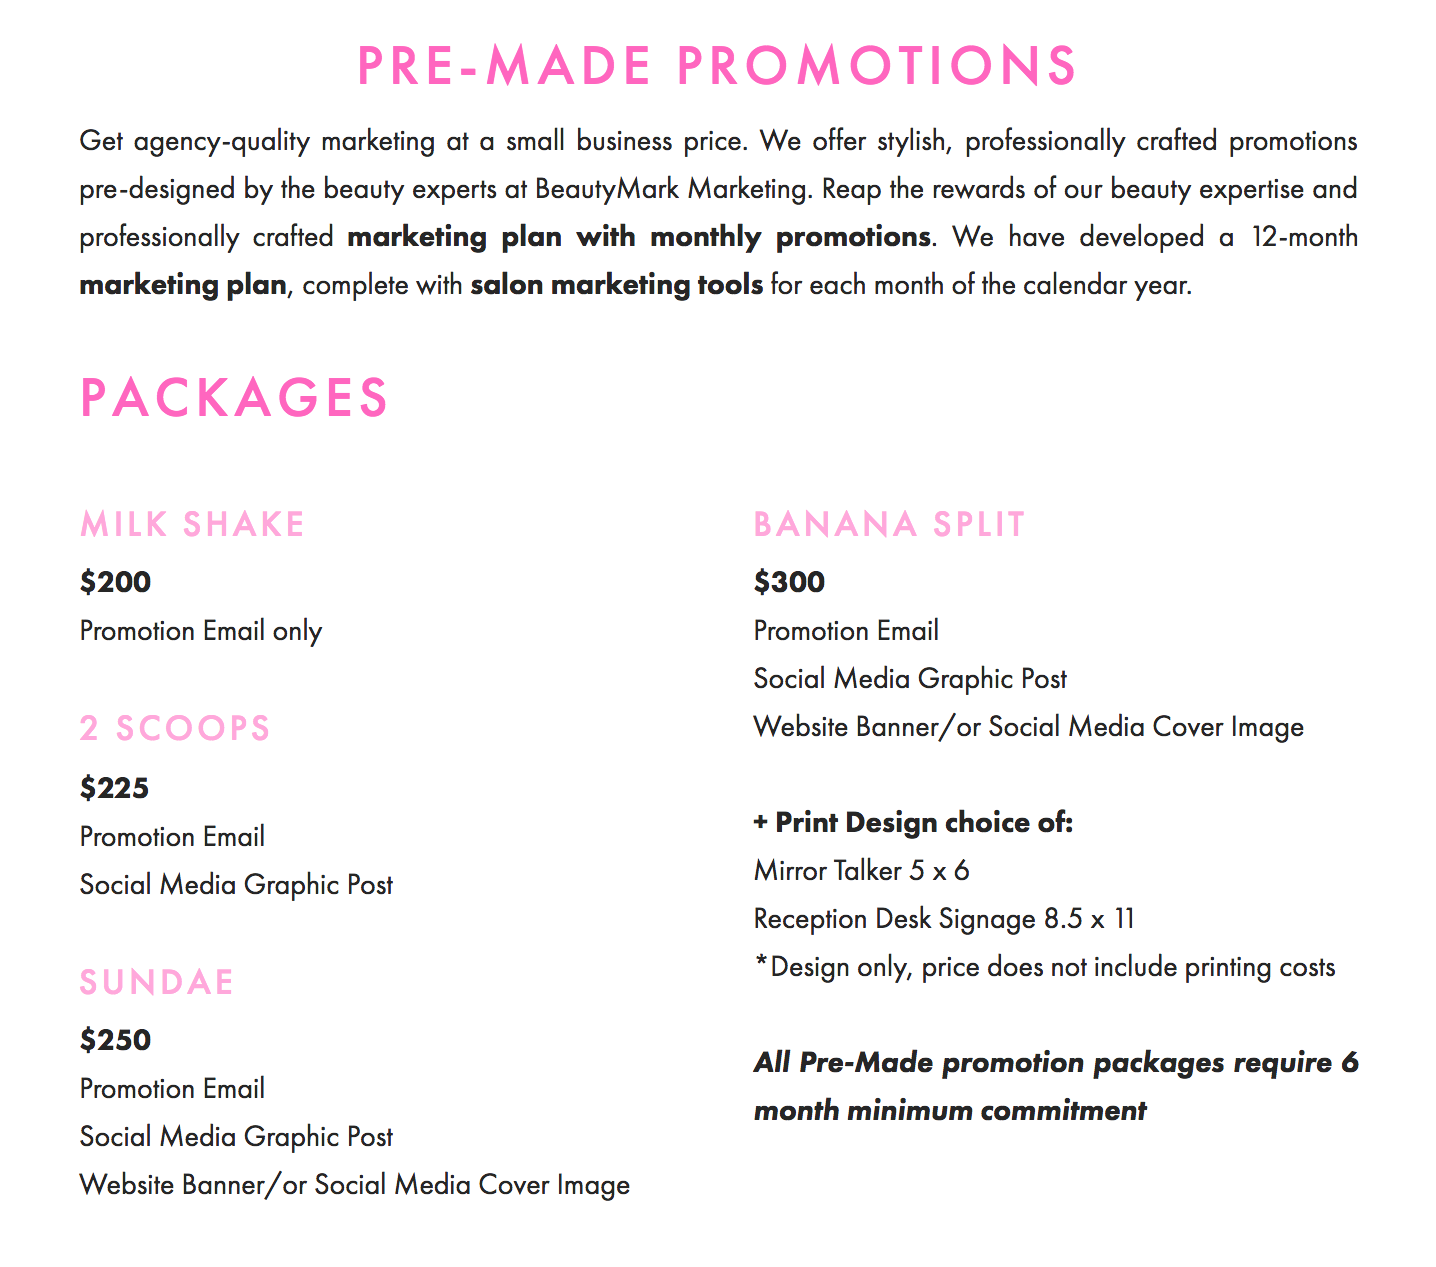 premade promotions